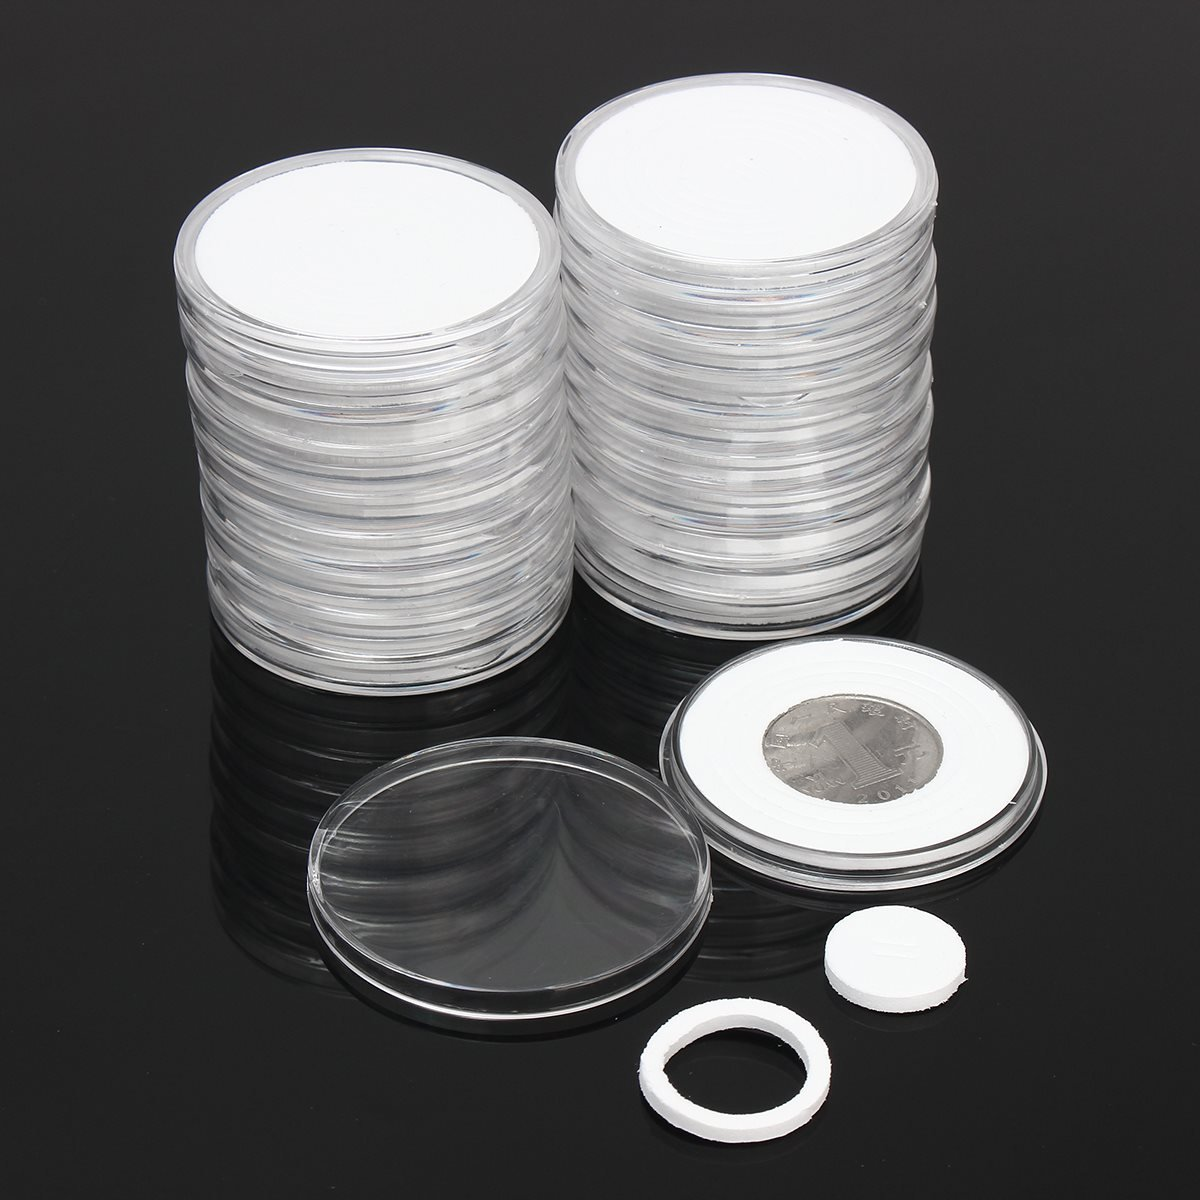 Xiaolanwelc@ 20 Pcs/Set Coin Storage Container Box 51mm Dia. Round Display Capsules Holder Ring Applied Clear Plastic Cases Collection Gifts (One)